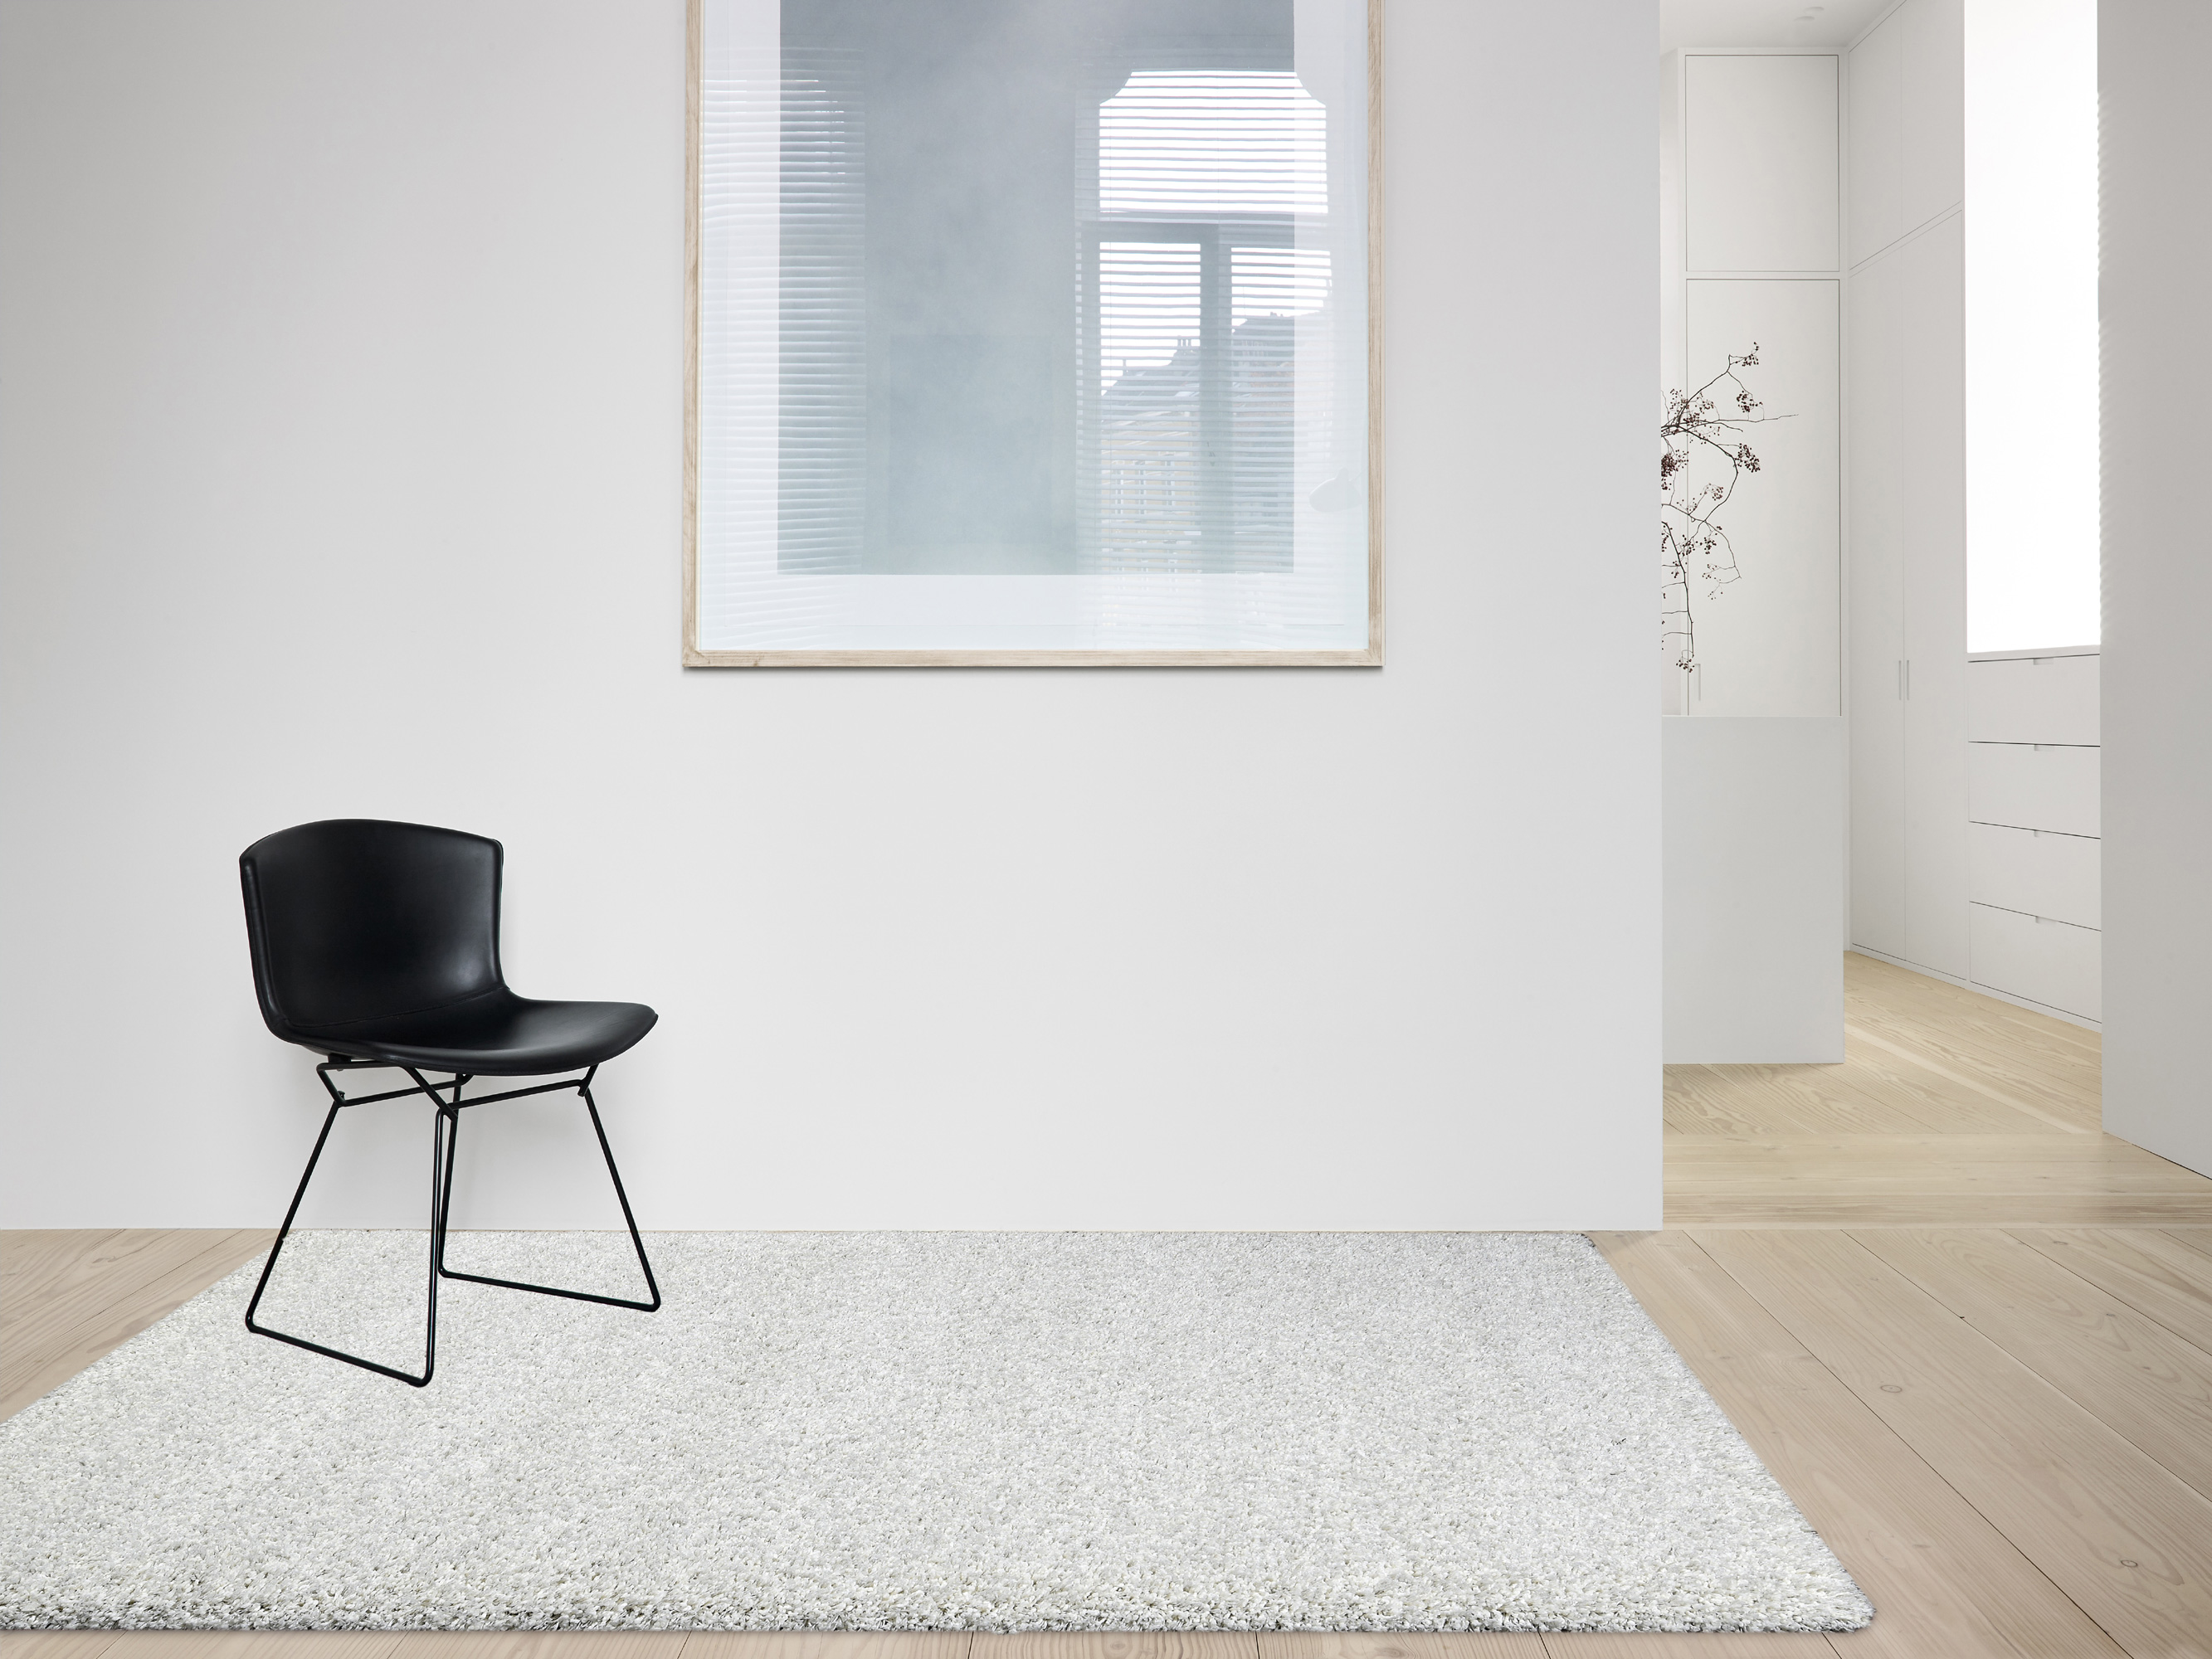 Twilight 6600 Snow White Square Rug in room with wooden floor and black mid-century chair